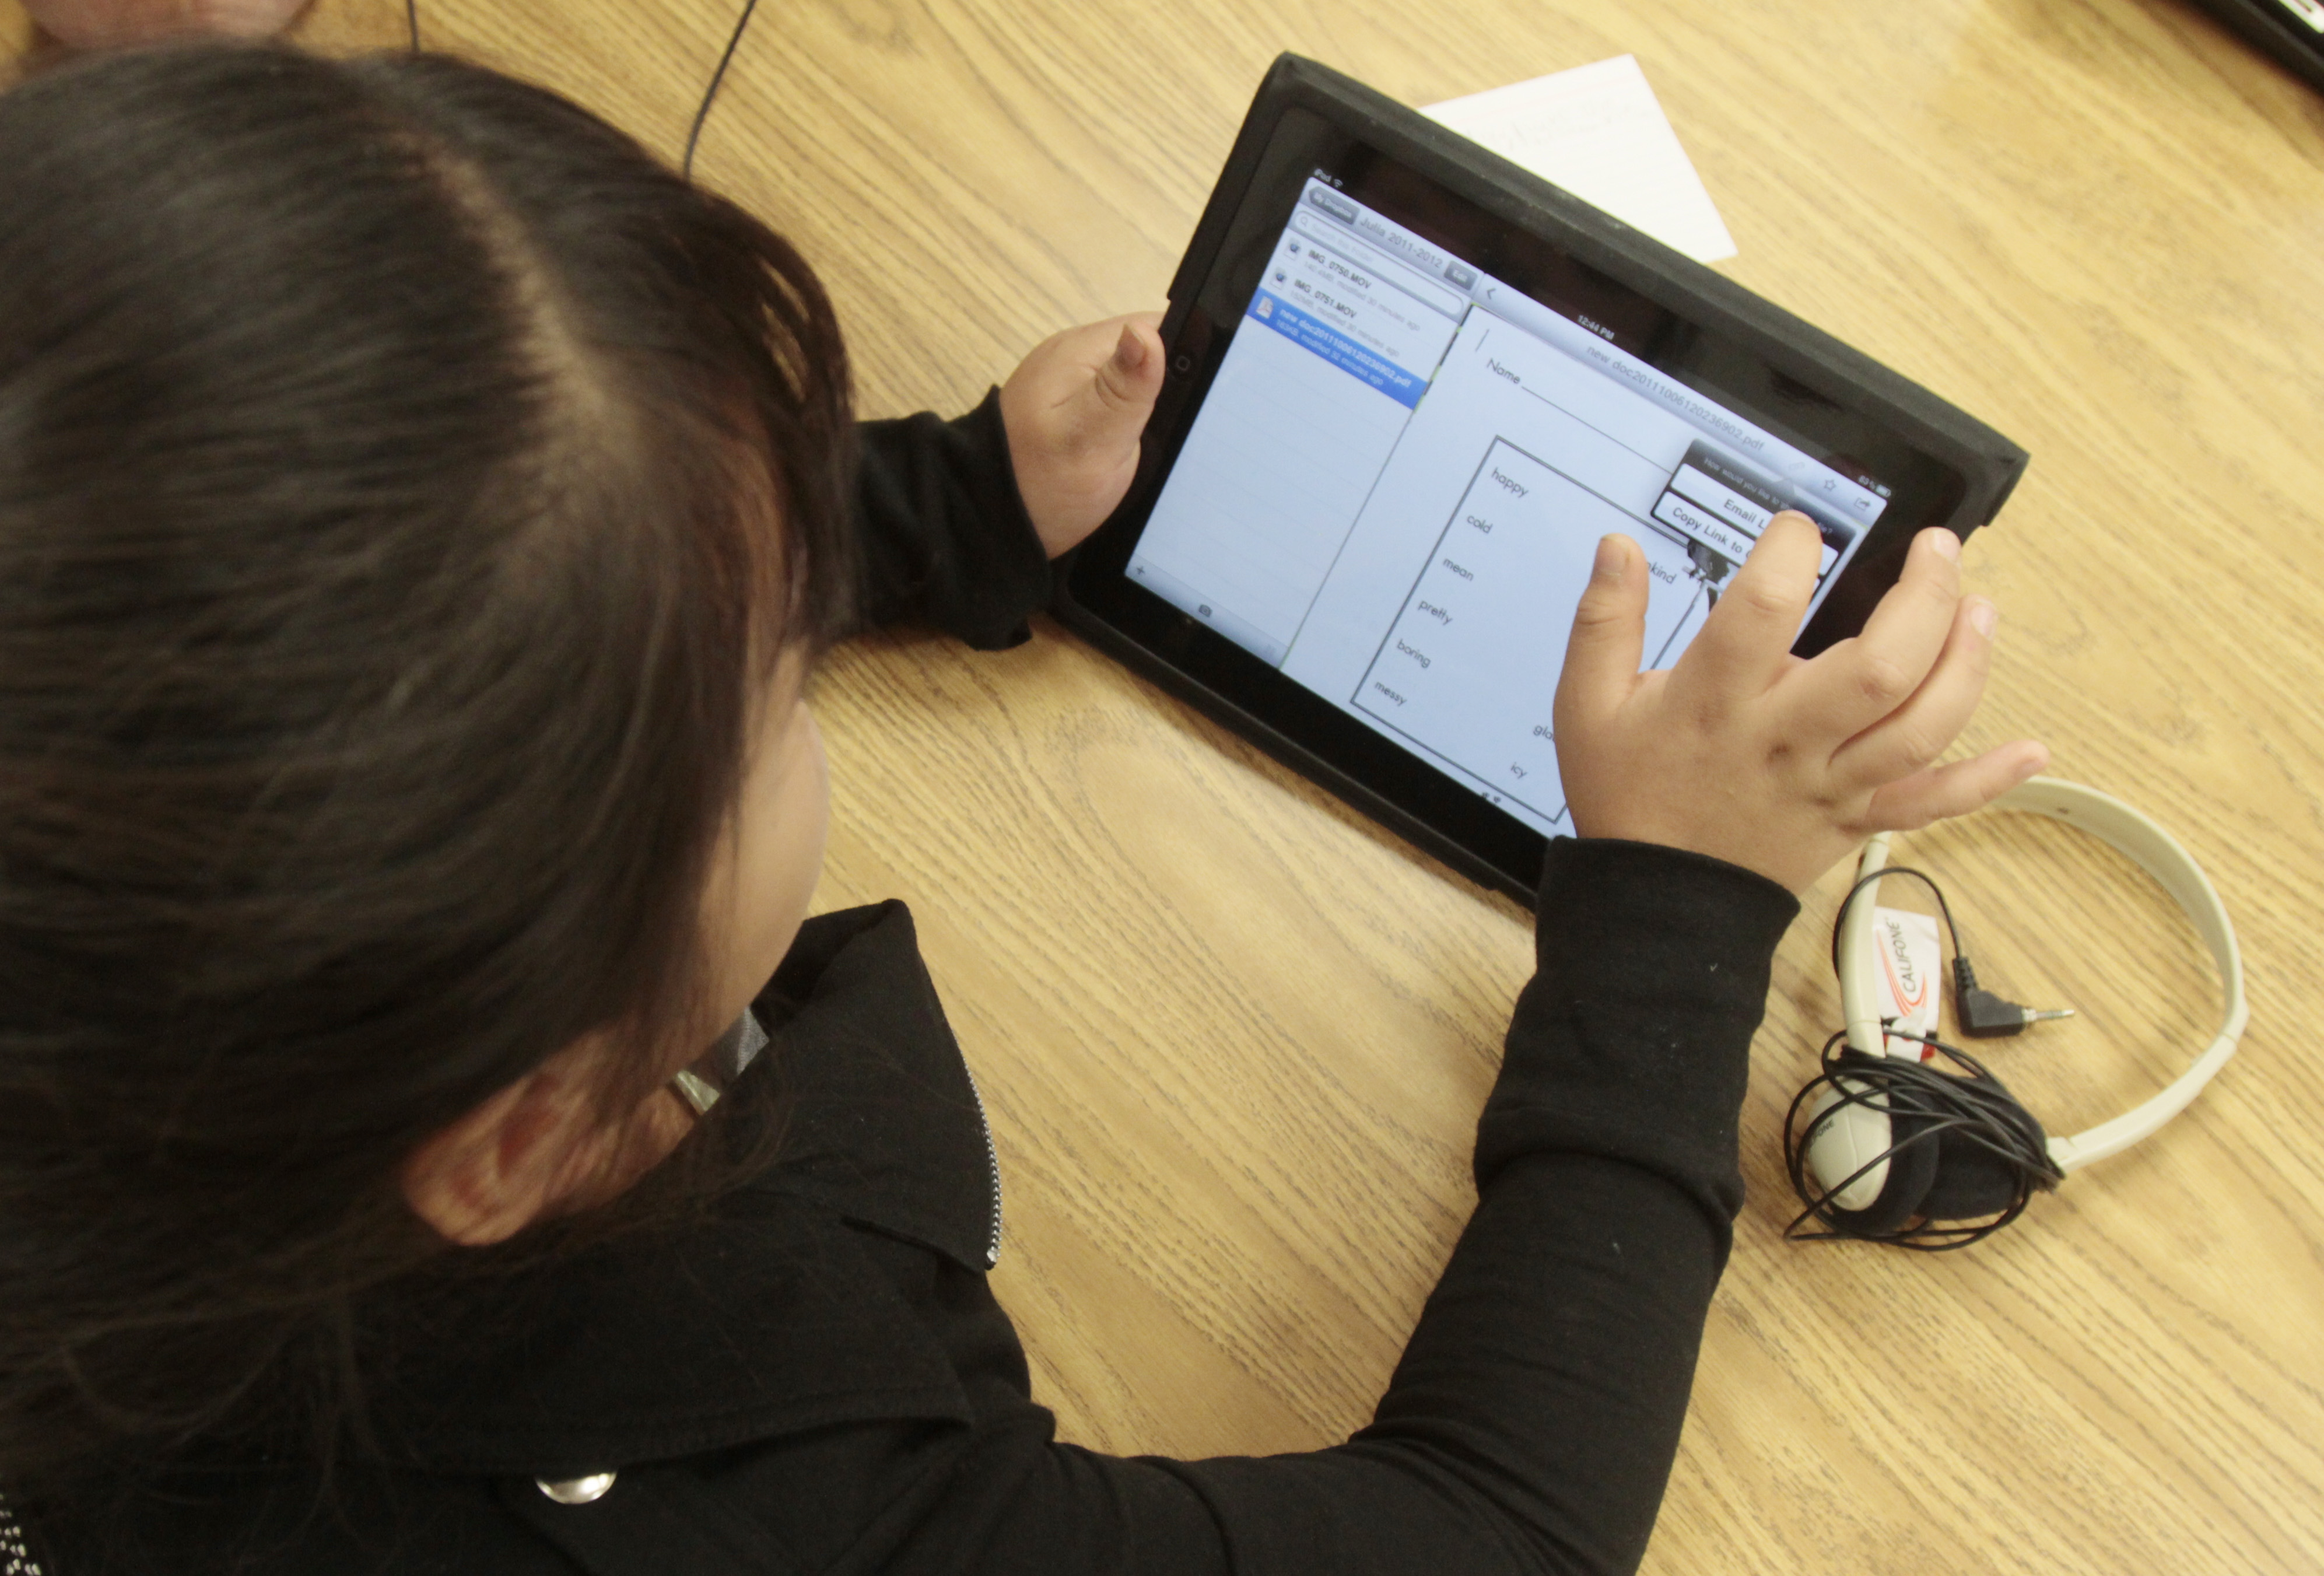 Students Are 'Hacking' Their School-Issued iPads: Good for